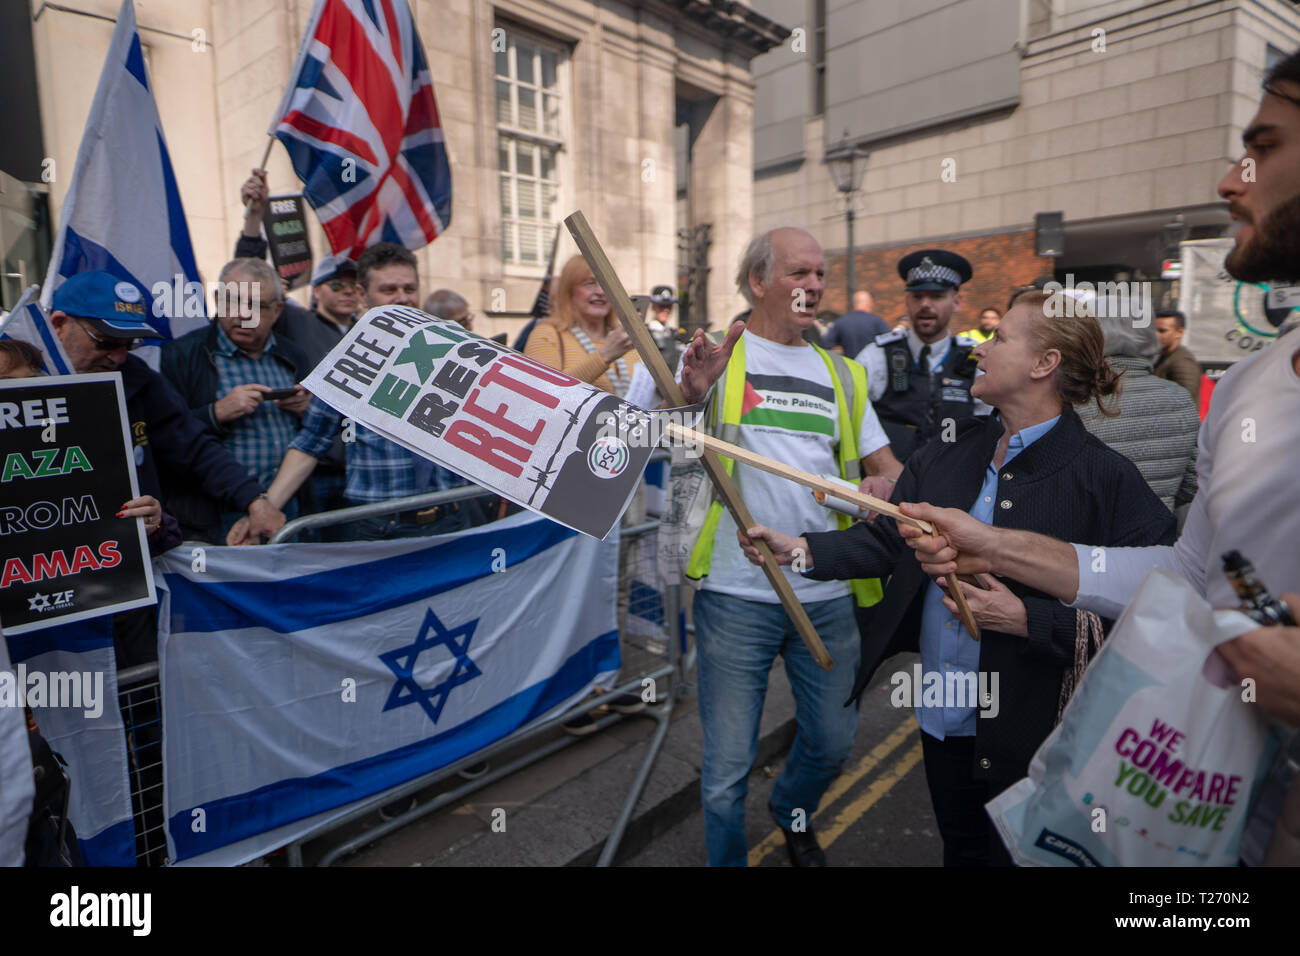 London, UK. 30th March 2019. A pro-Palestine demonstration (Exist, Resist Return) clashes with Israel supporters outside the Israel embassy in London. Photo date: Saturday, March 30, 2019. Photo: Roger Garfield/Alamy Live News Credit: Roger Garfield/Alamy Live News - Stock Image